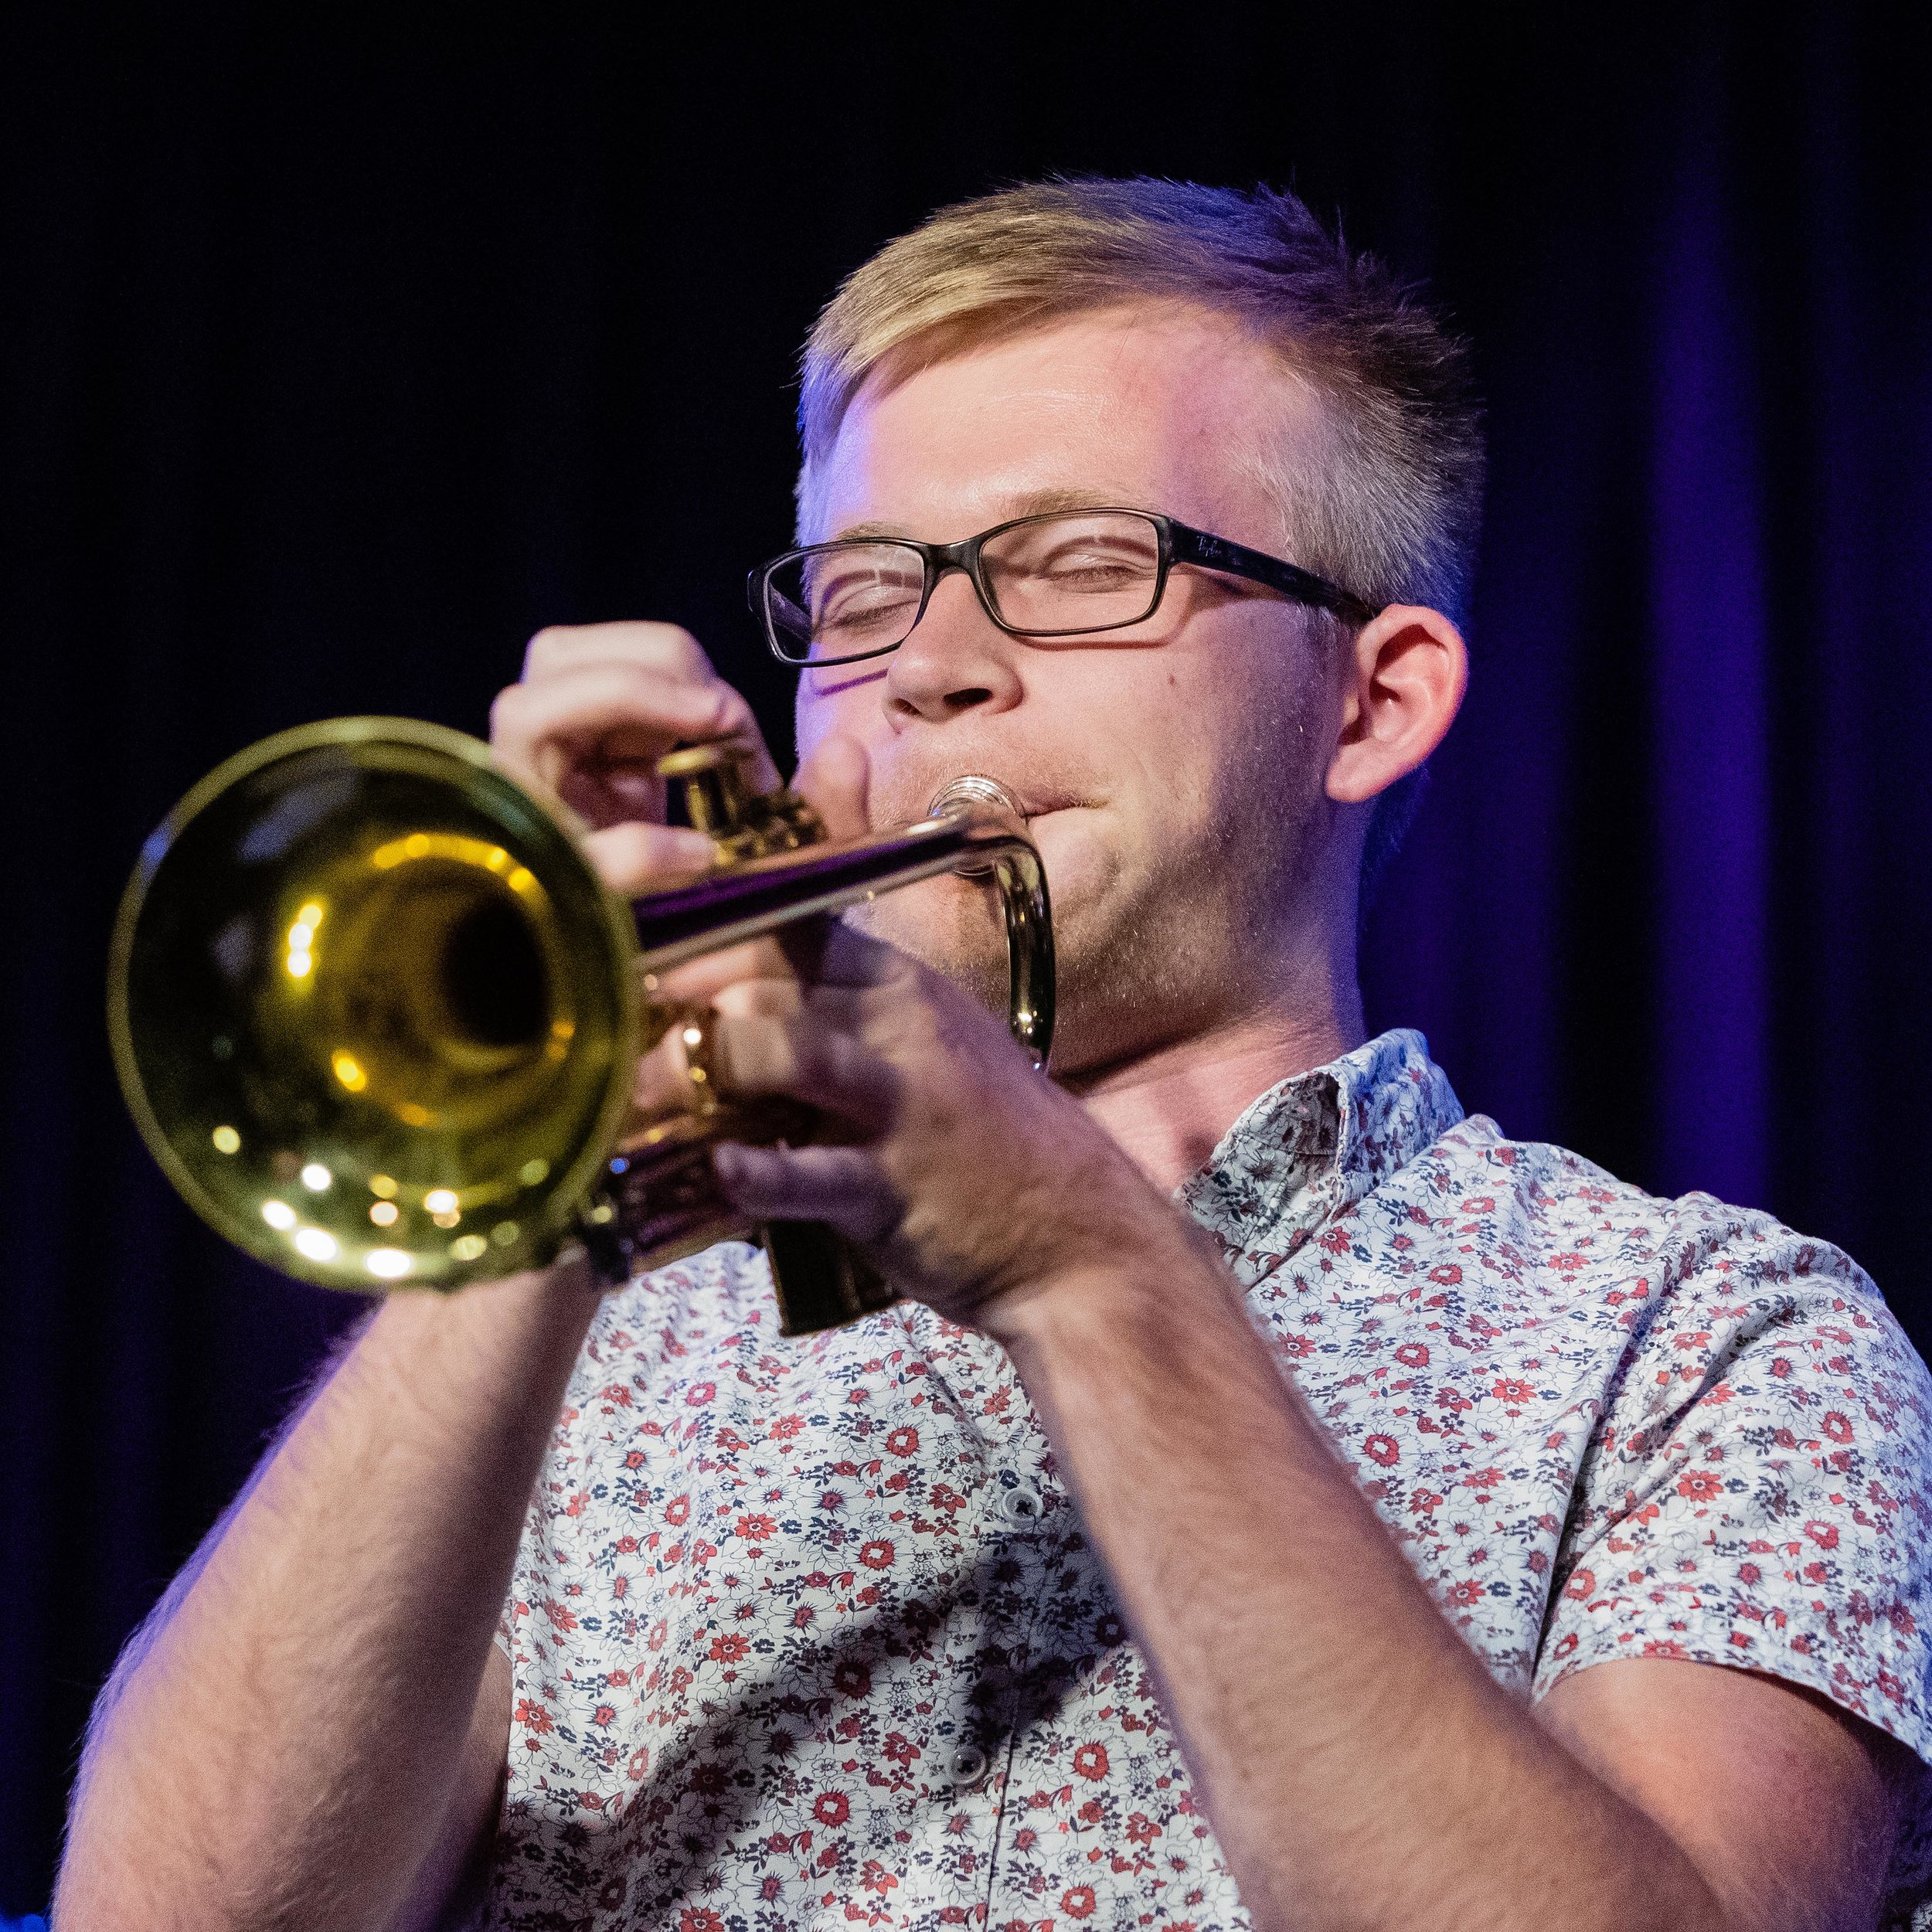 Liam Connor on trumpet with Running From Bears at The Nash Jazz Club.